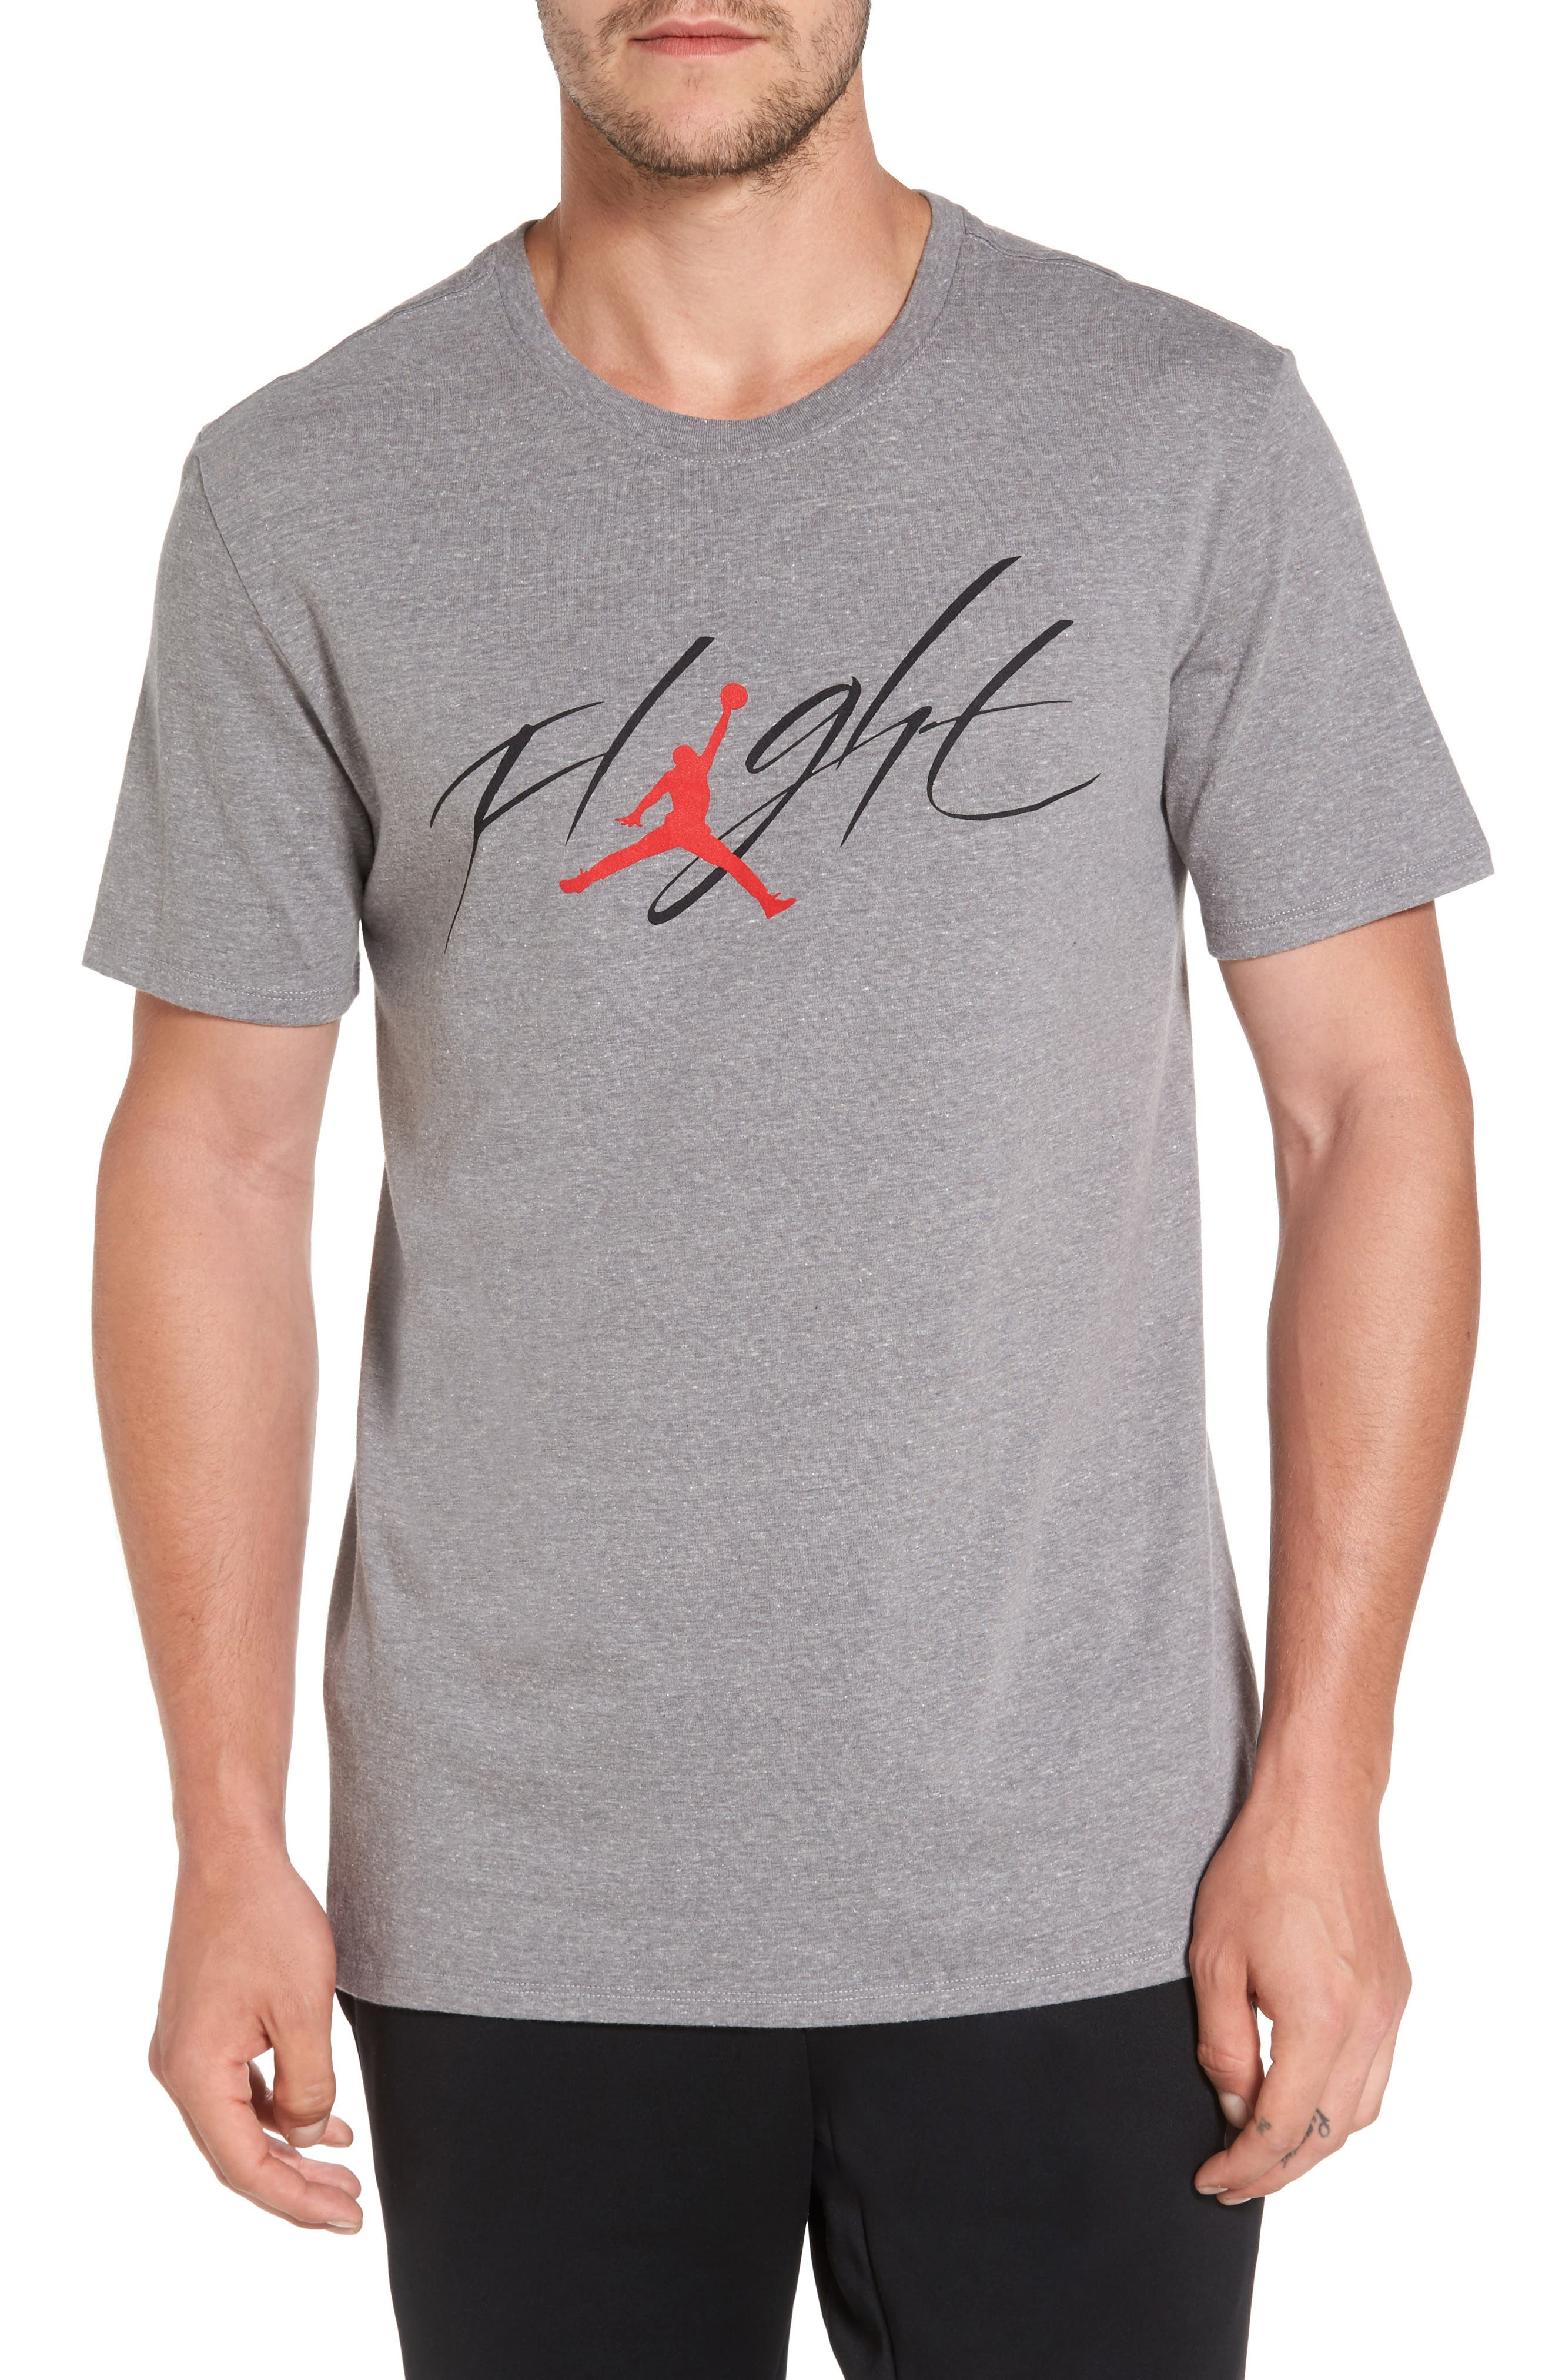 Sportswear Flight T-Shirt,                             Main thumbnail 1, color,                             Carbon Heather/ Black/ Red